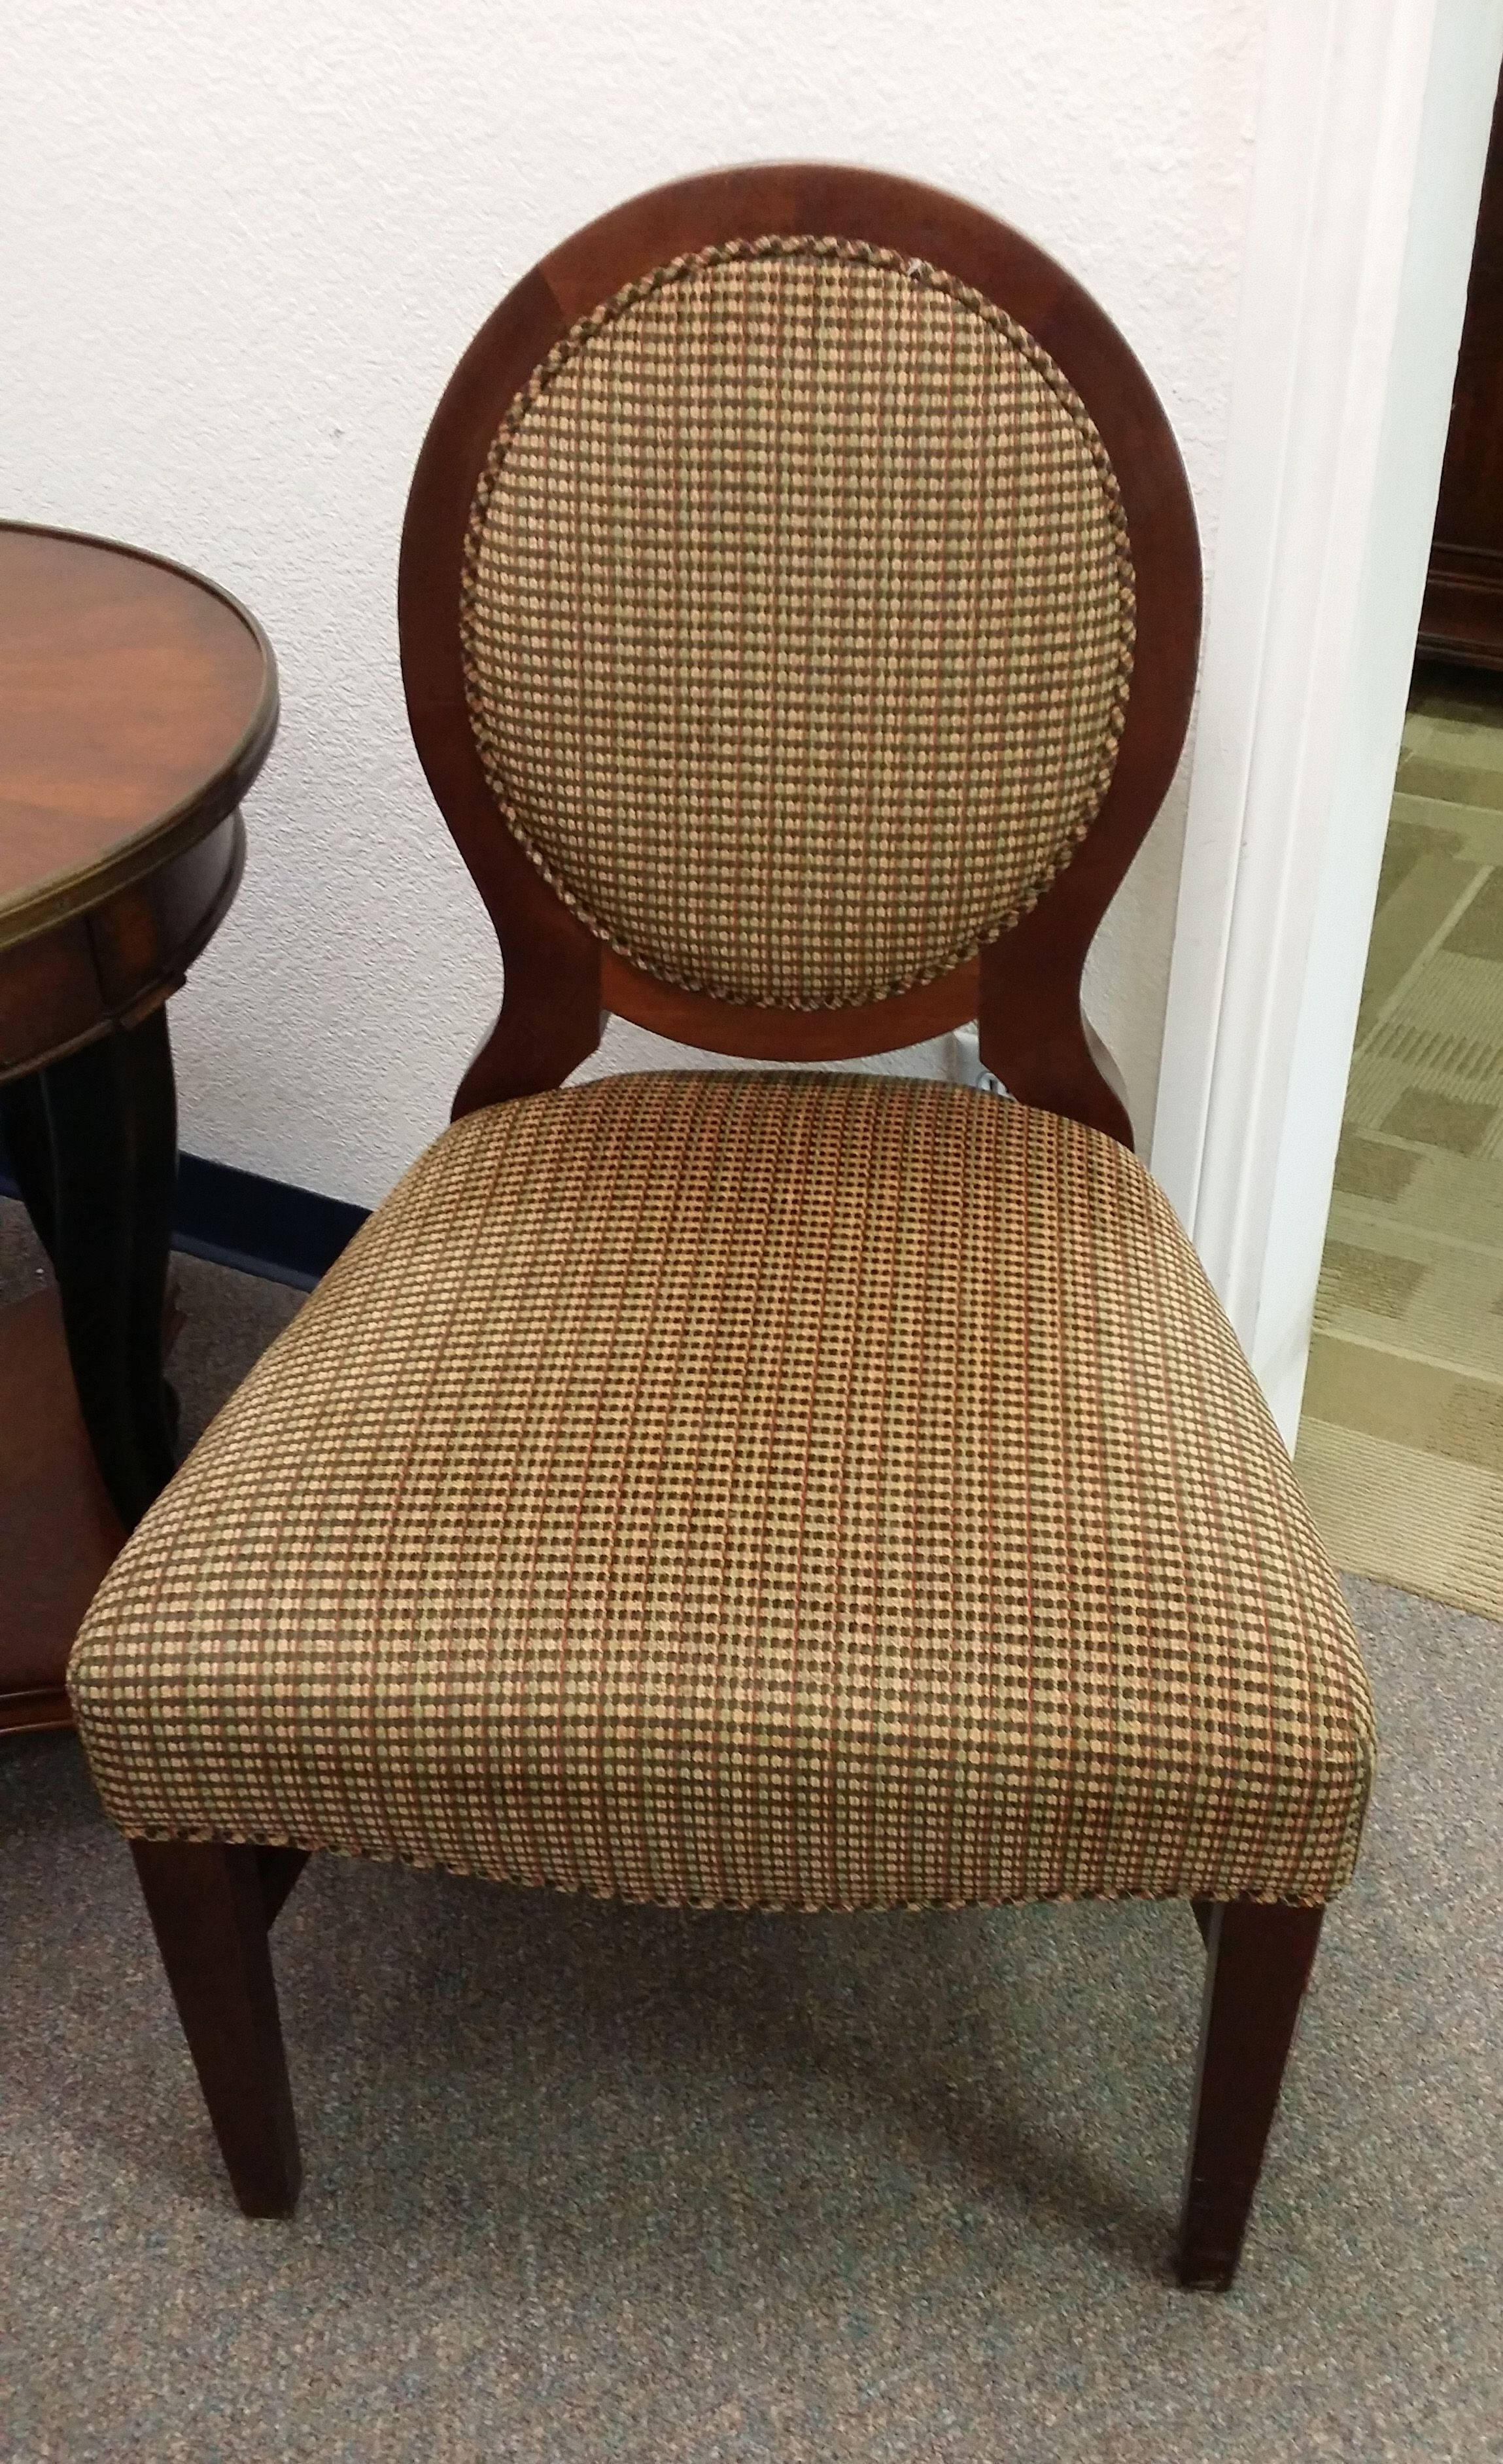 Upholstered chairs from Harrah's Suites $79.00 each